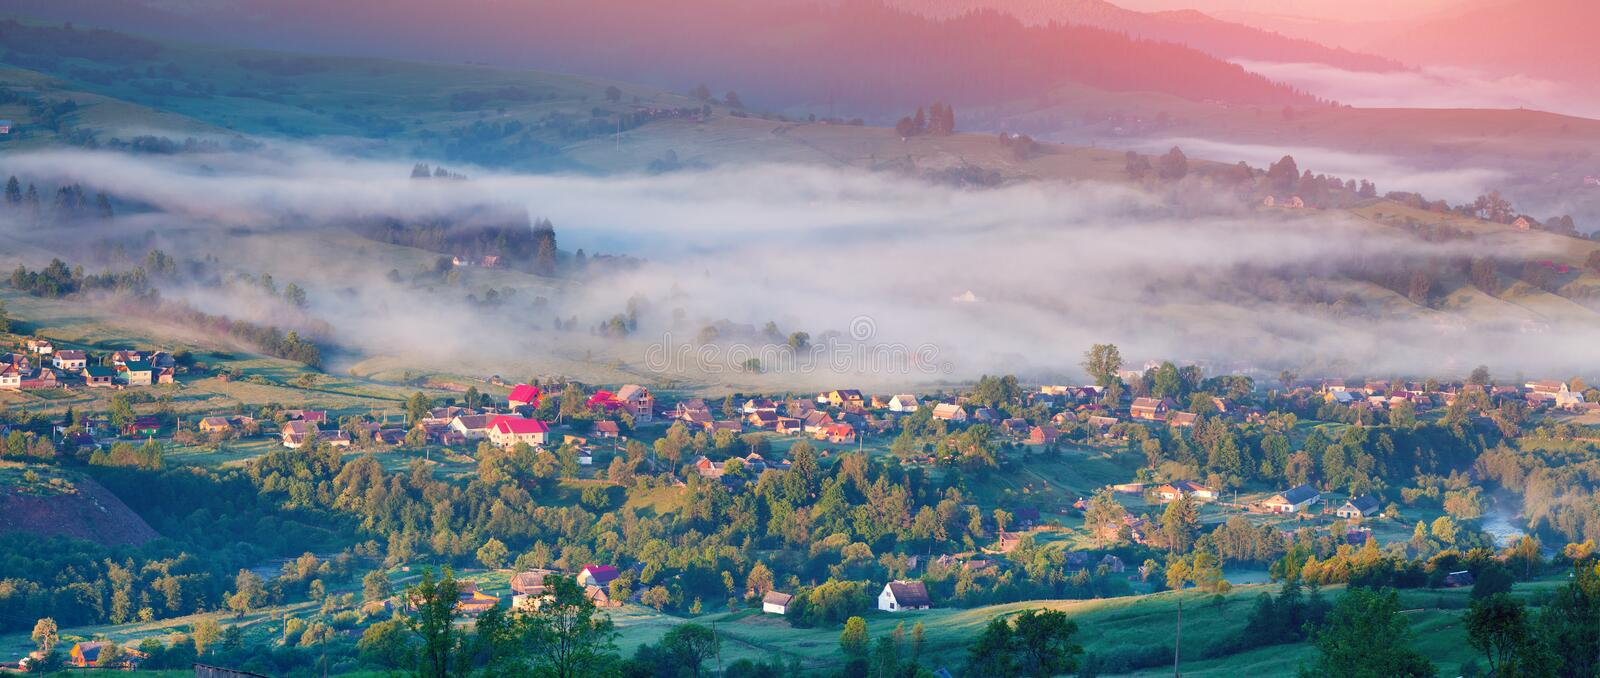 Colorful summer panorama of sunrise un mountain village royalty free stock image